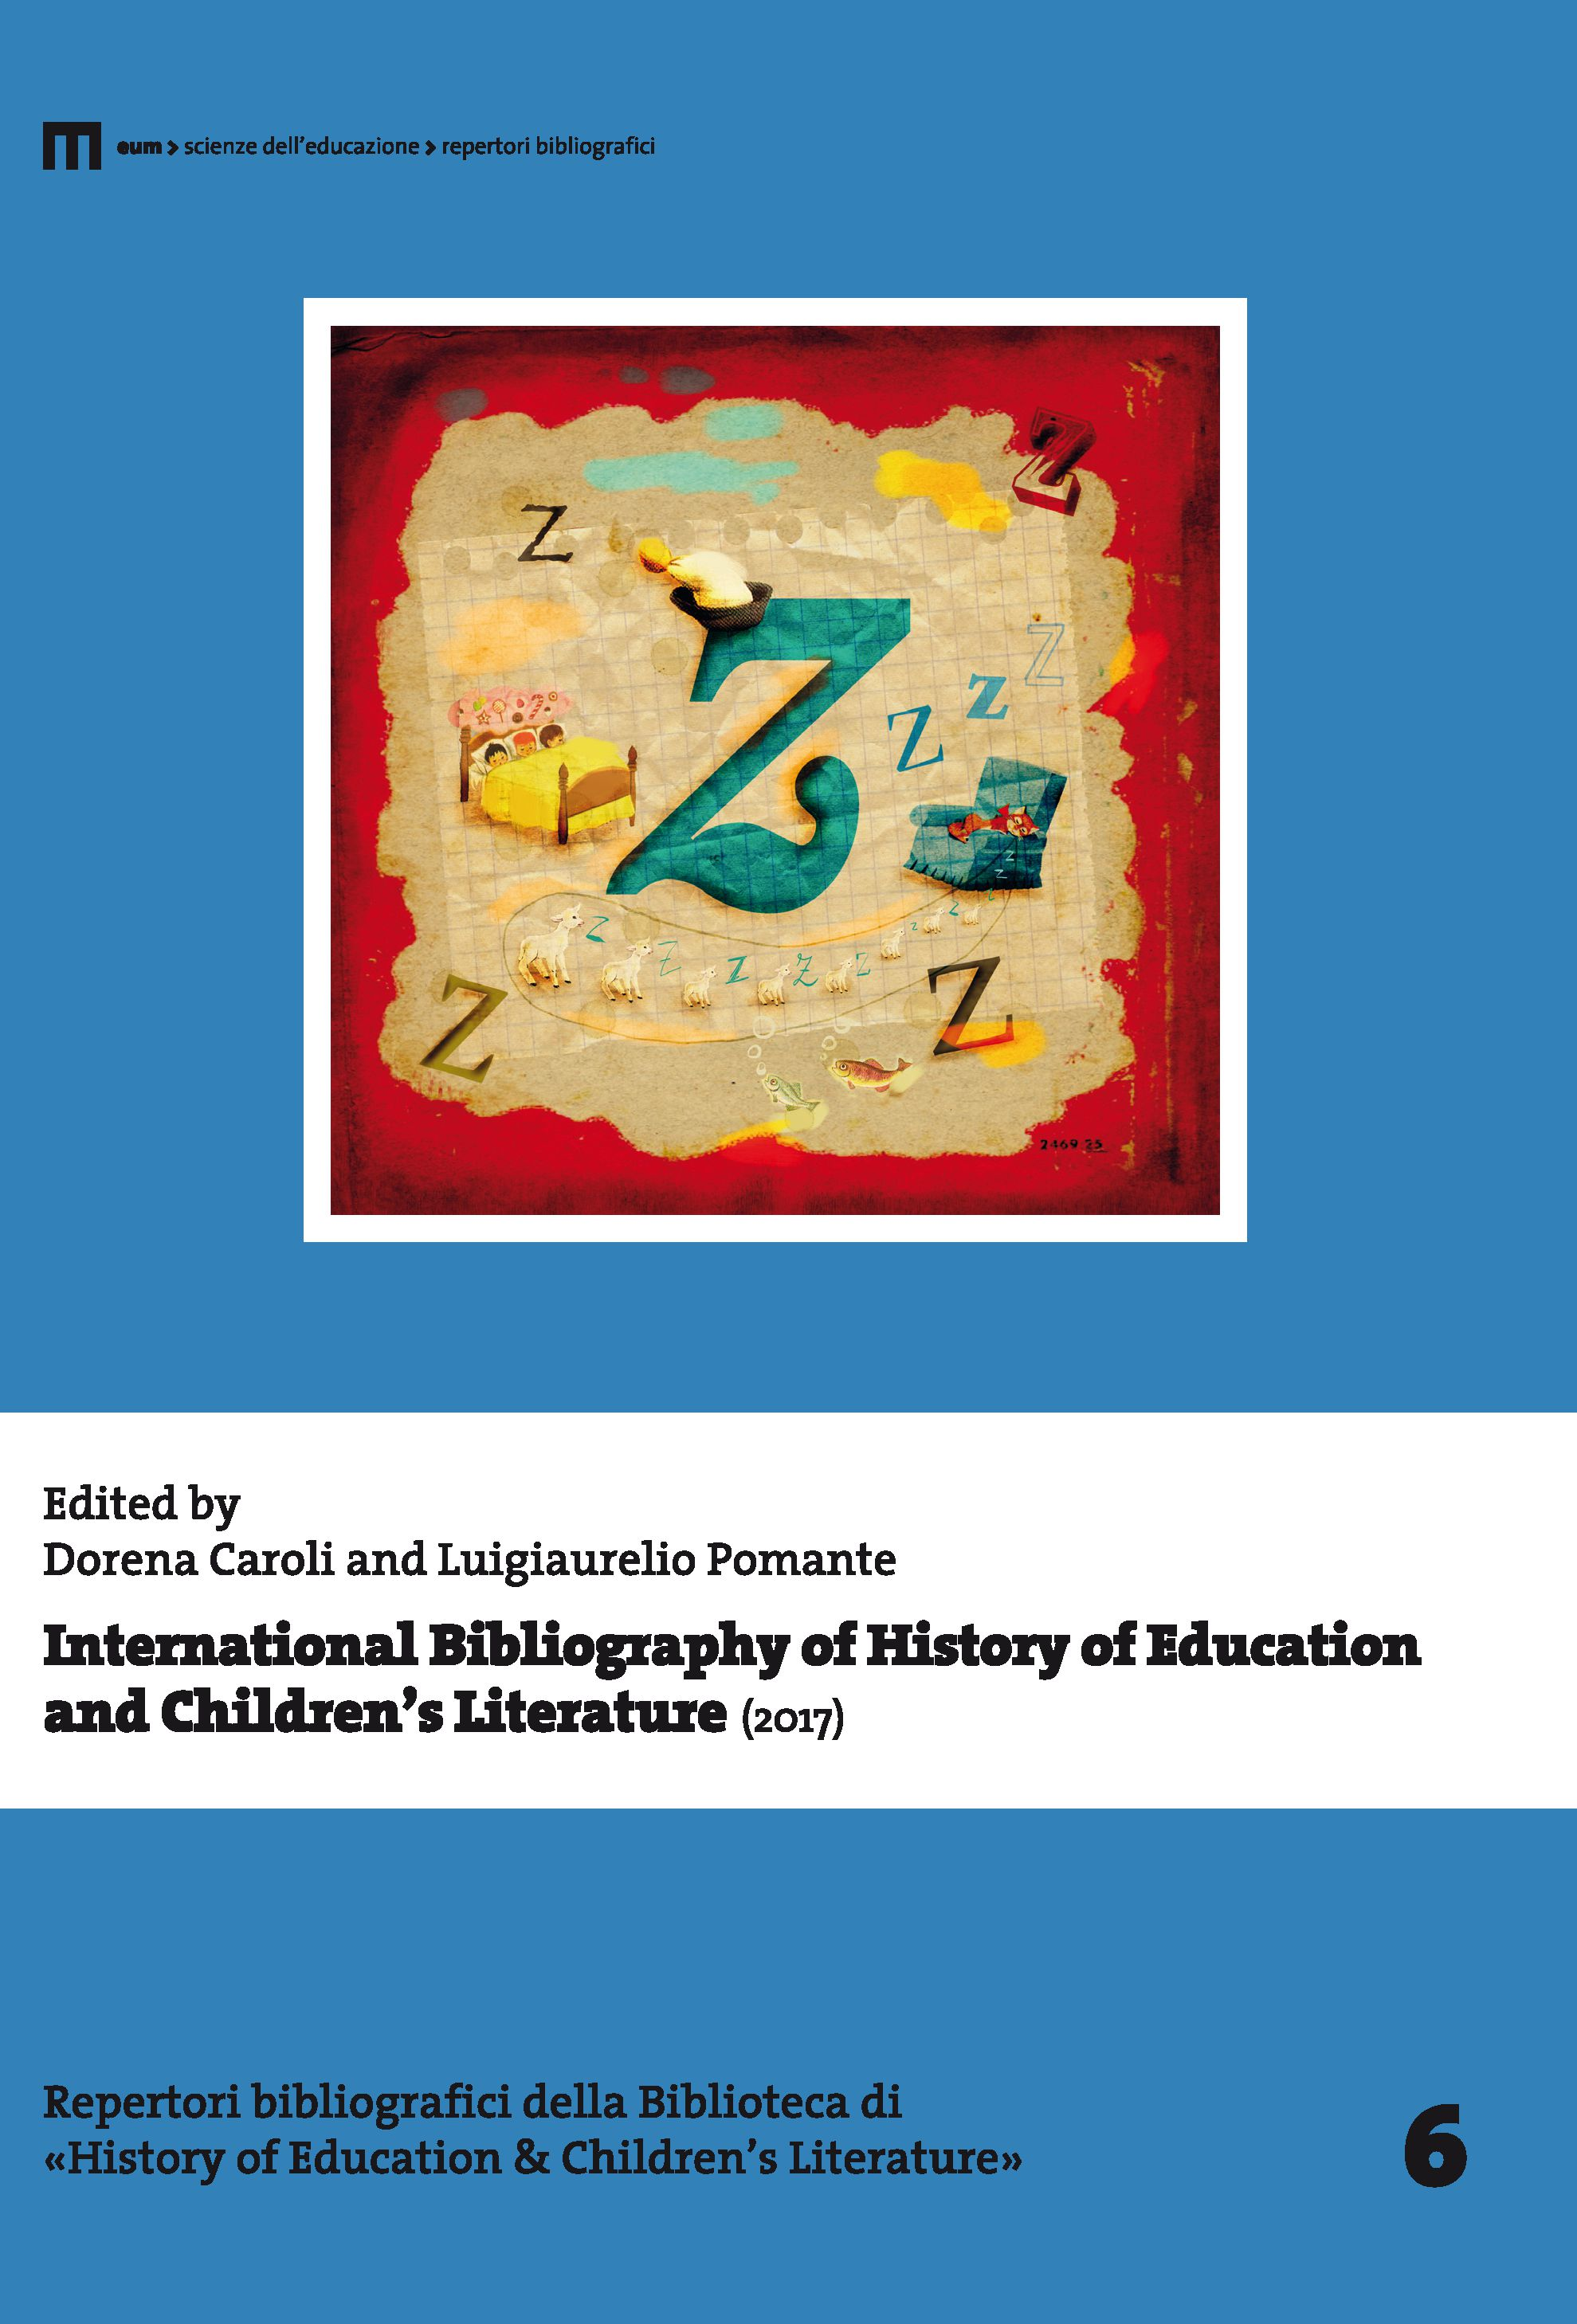 International Bibliography of History of Education and Children's Literature (2017)